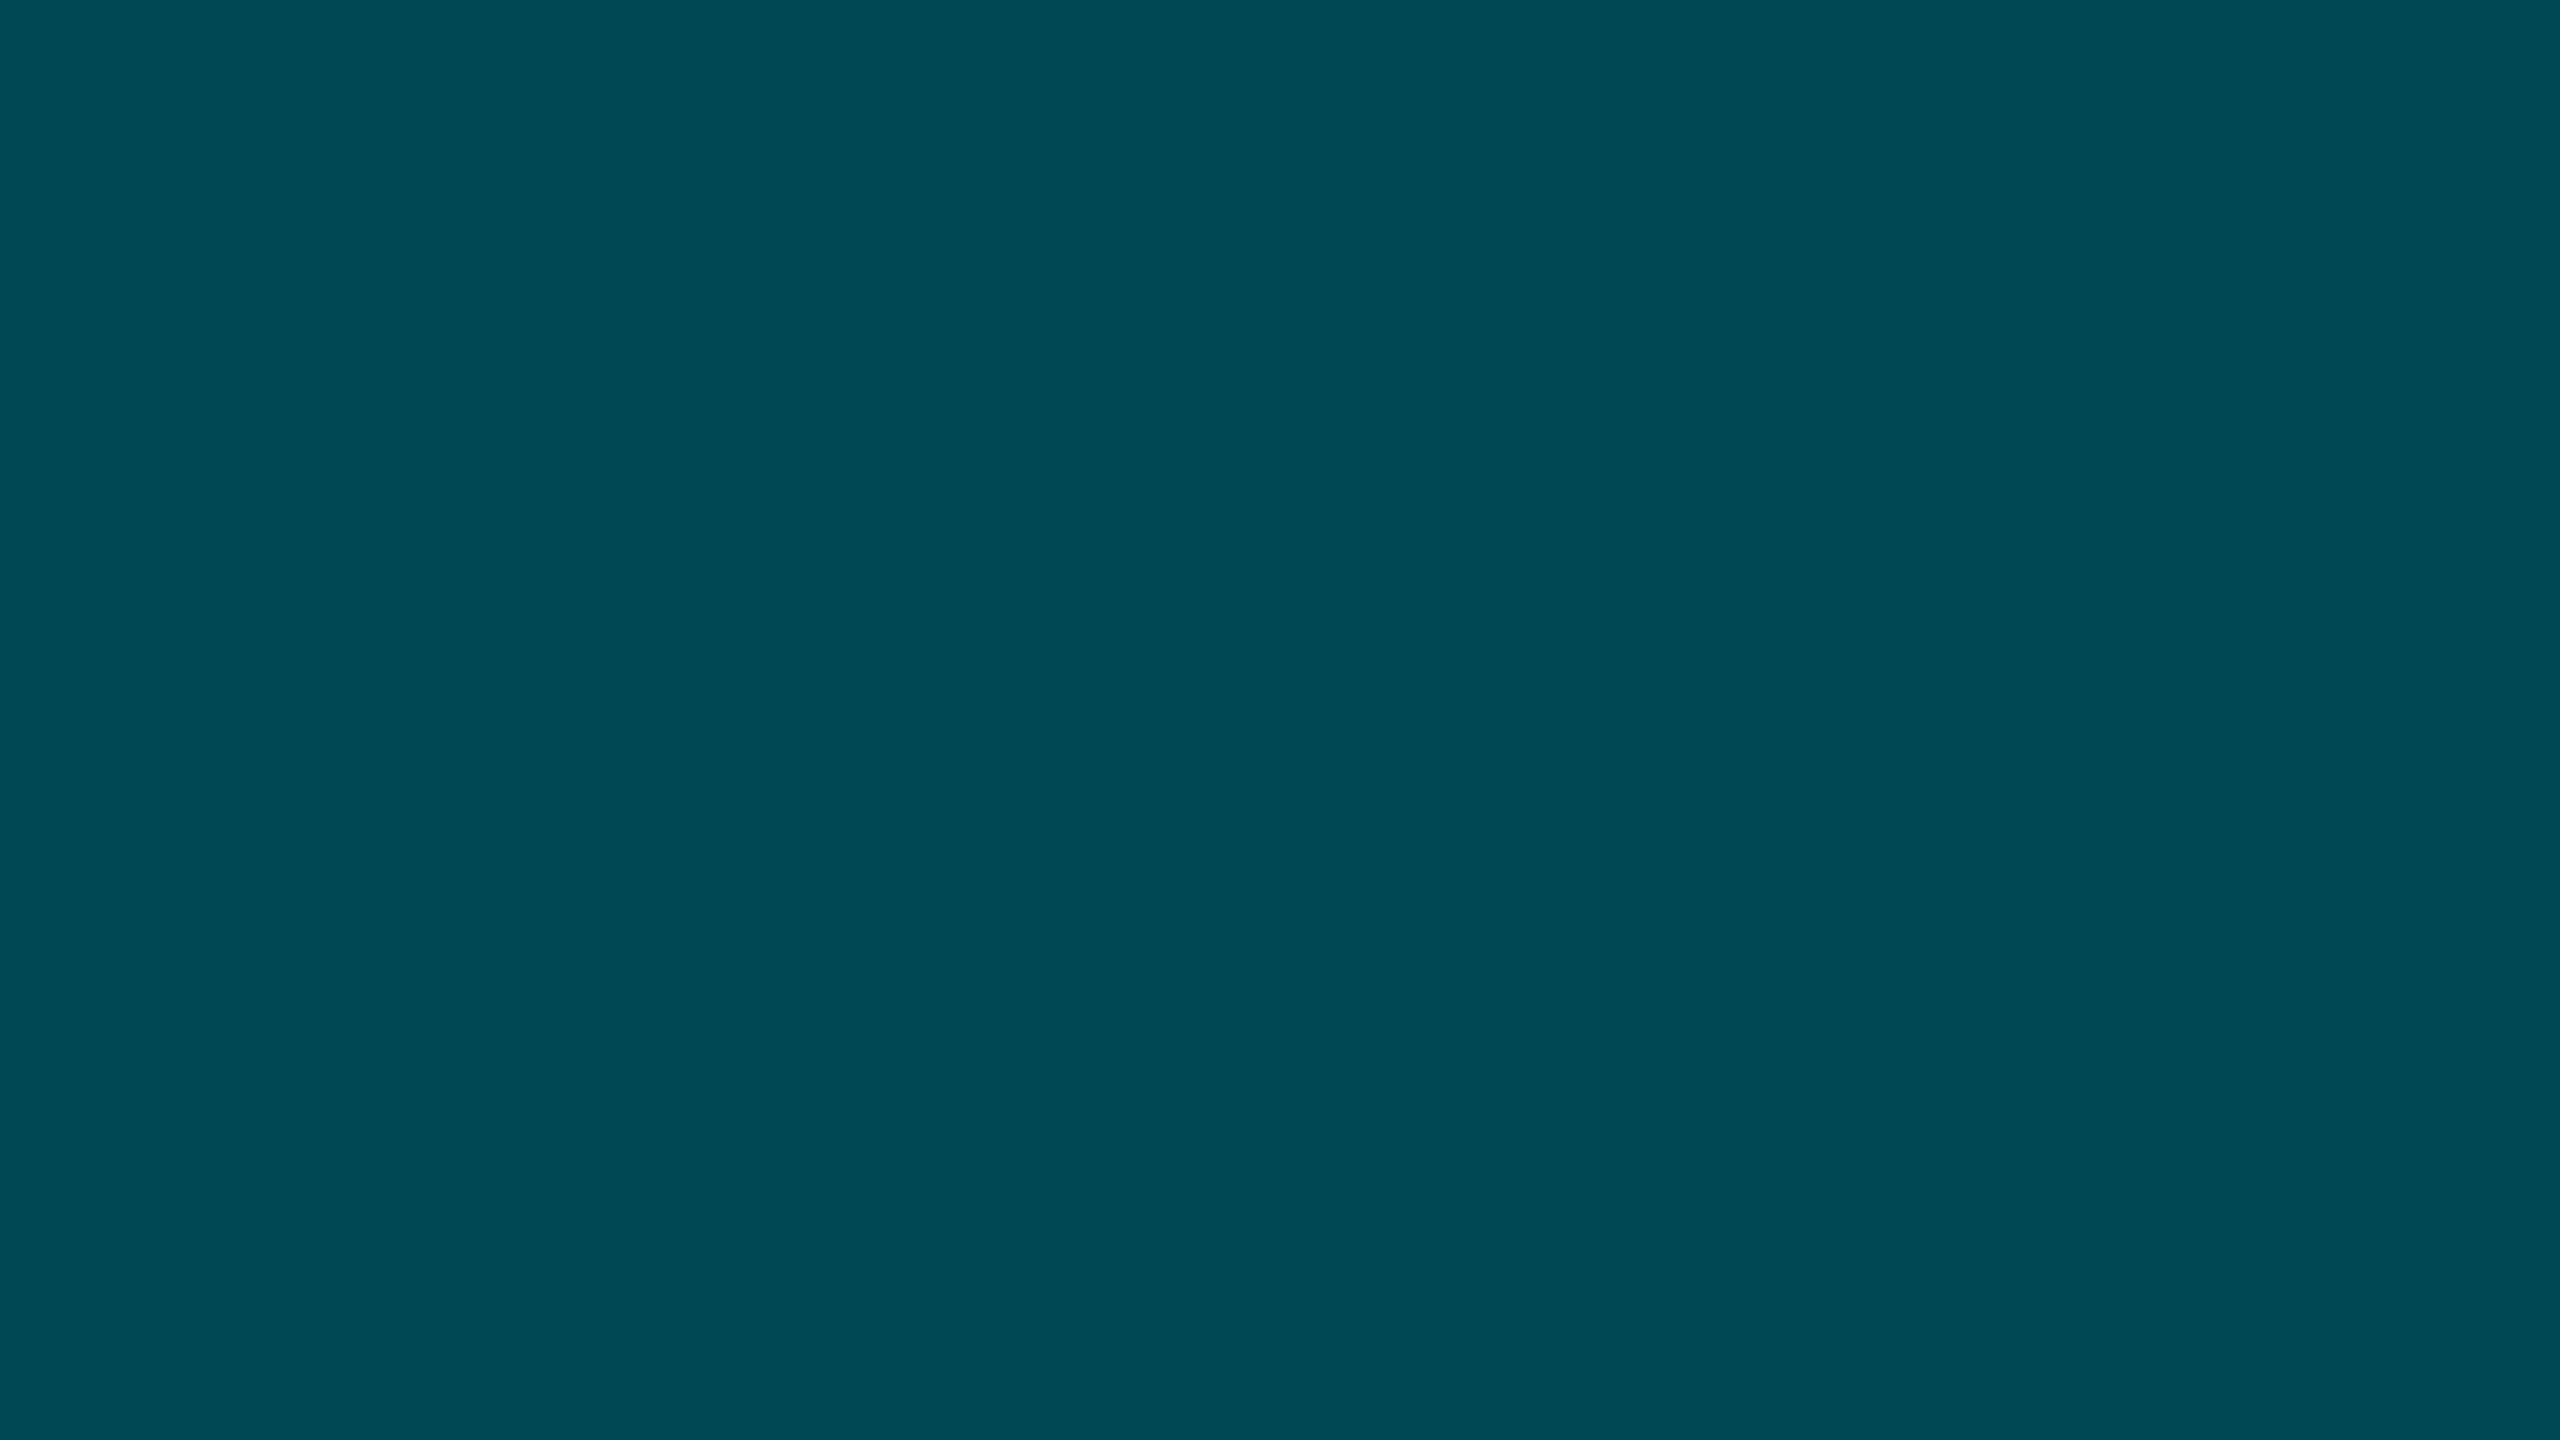 2560x1440 Midnight Green Solid Color Background